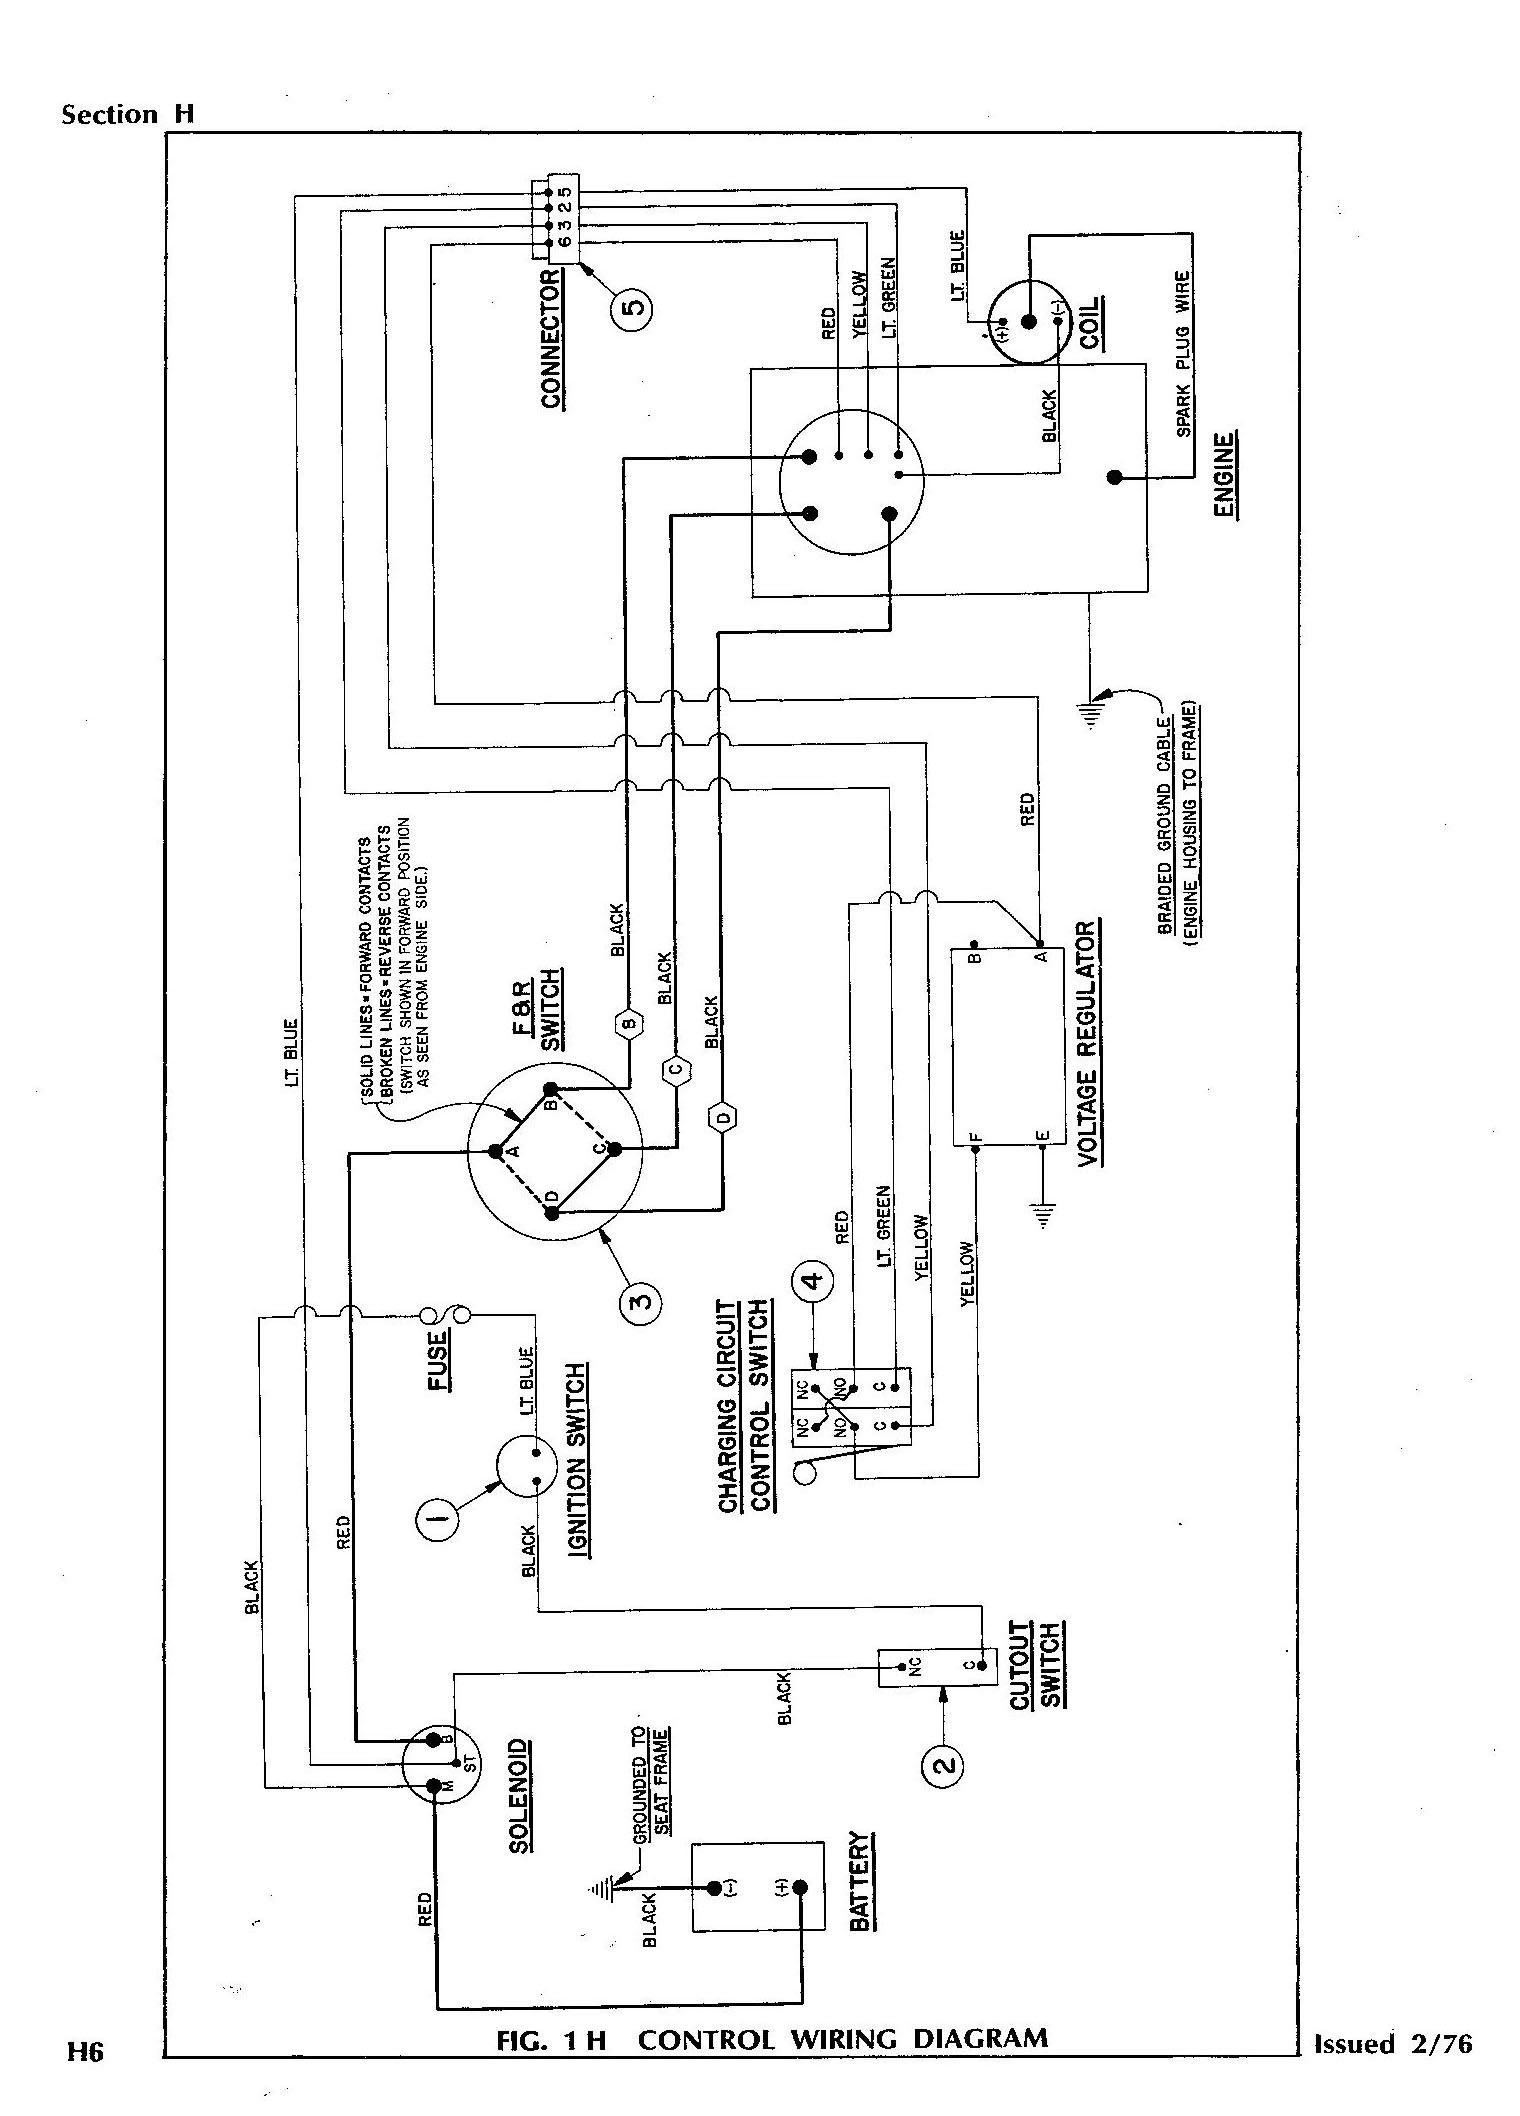 1996 Gas Ezgo Wire Diagram 2006 Ezgo Txt Gas Wiring Diagram Directional Lights Wiring Of 1996 Gas Ezgo Wire Diagram